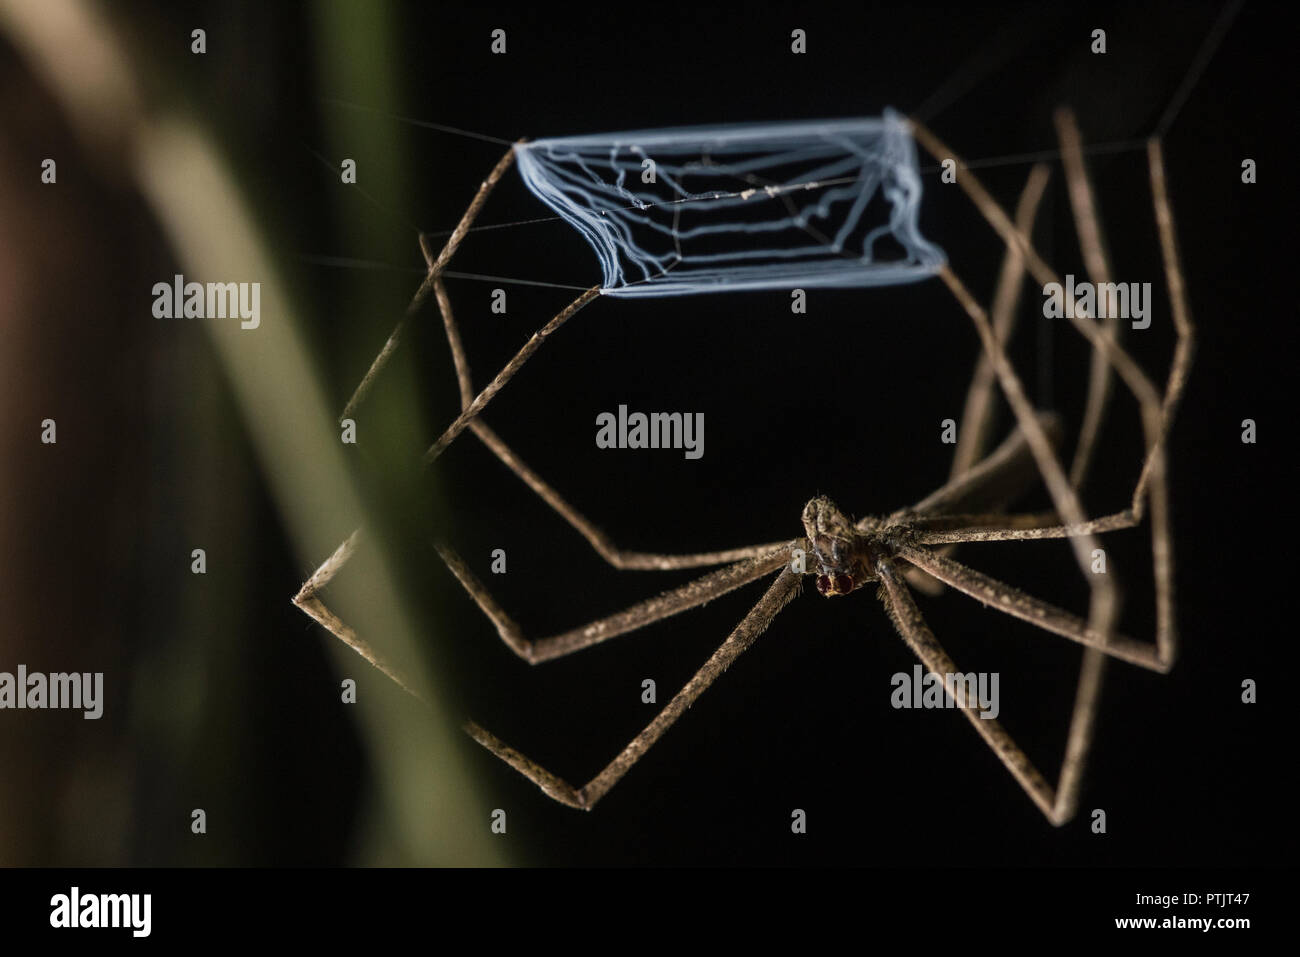 A net casting spider (Deinopis sp.) sits at the ready, prepared to catch any insect that come by with its modified web. - Stock Image